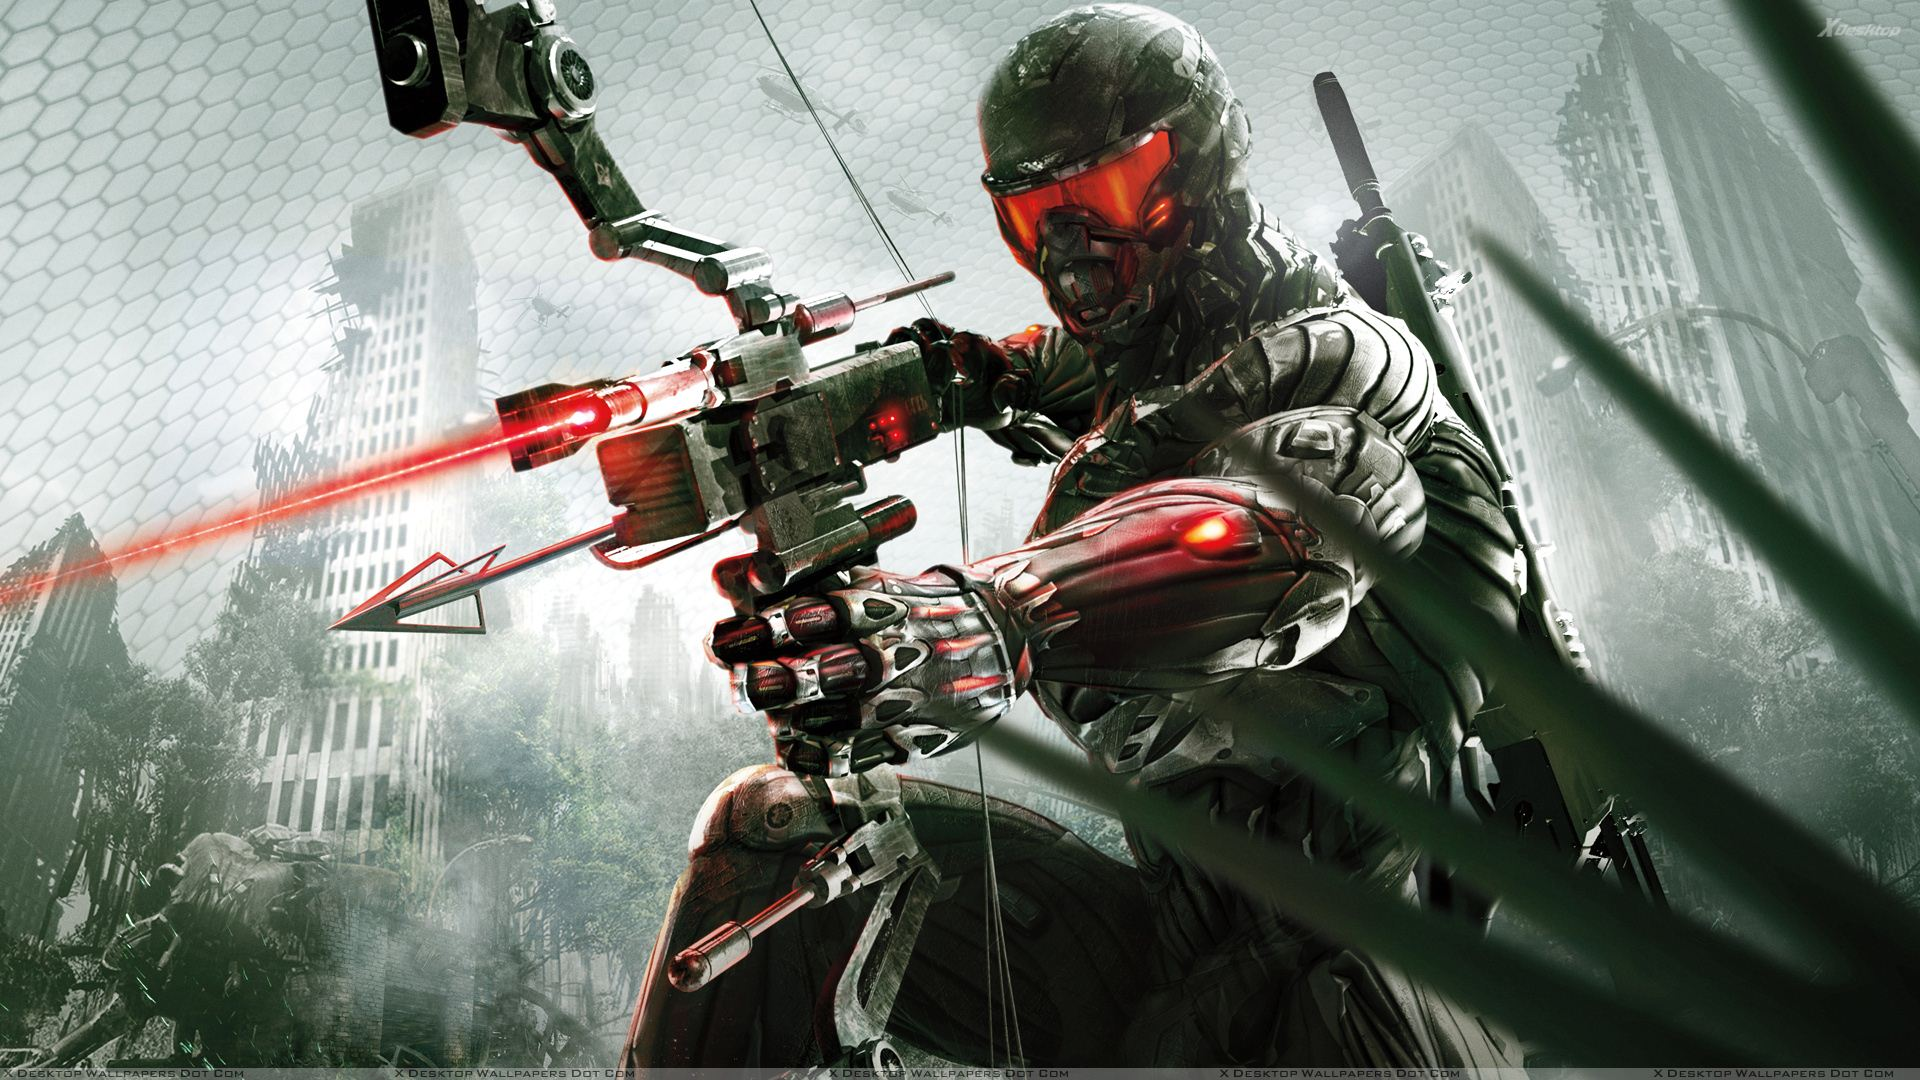 Crossbow High Quality Background on Wallpapers Vista